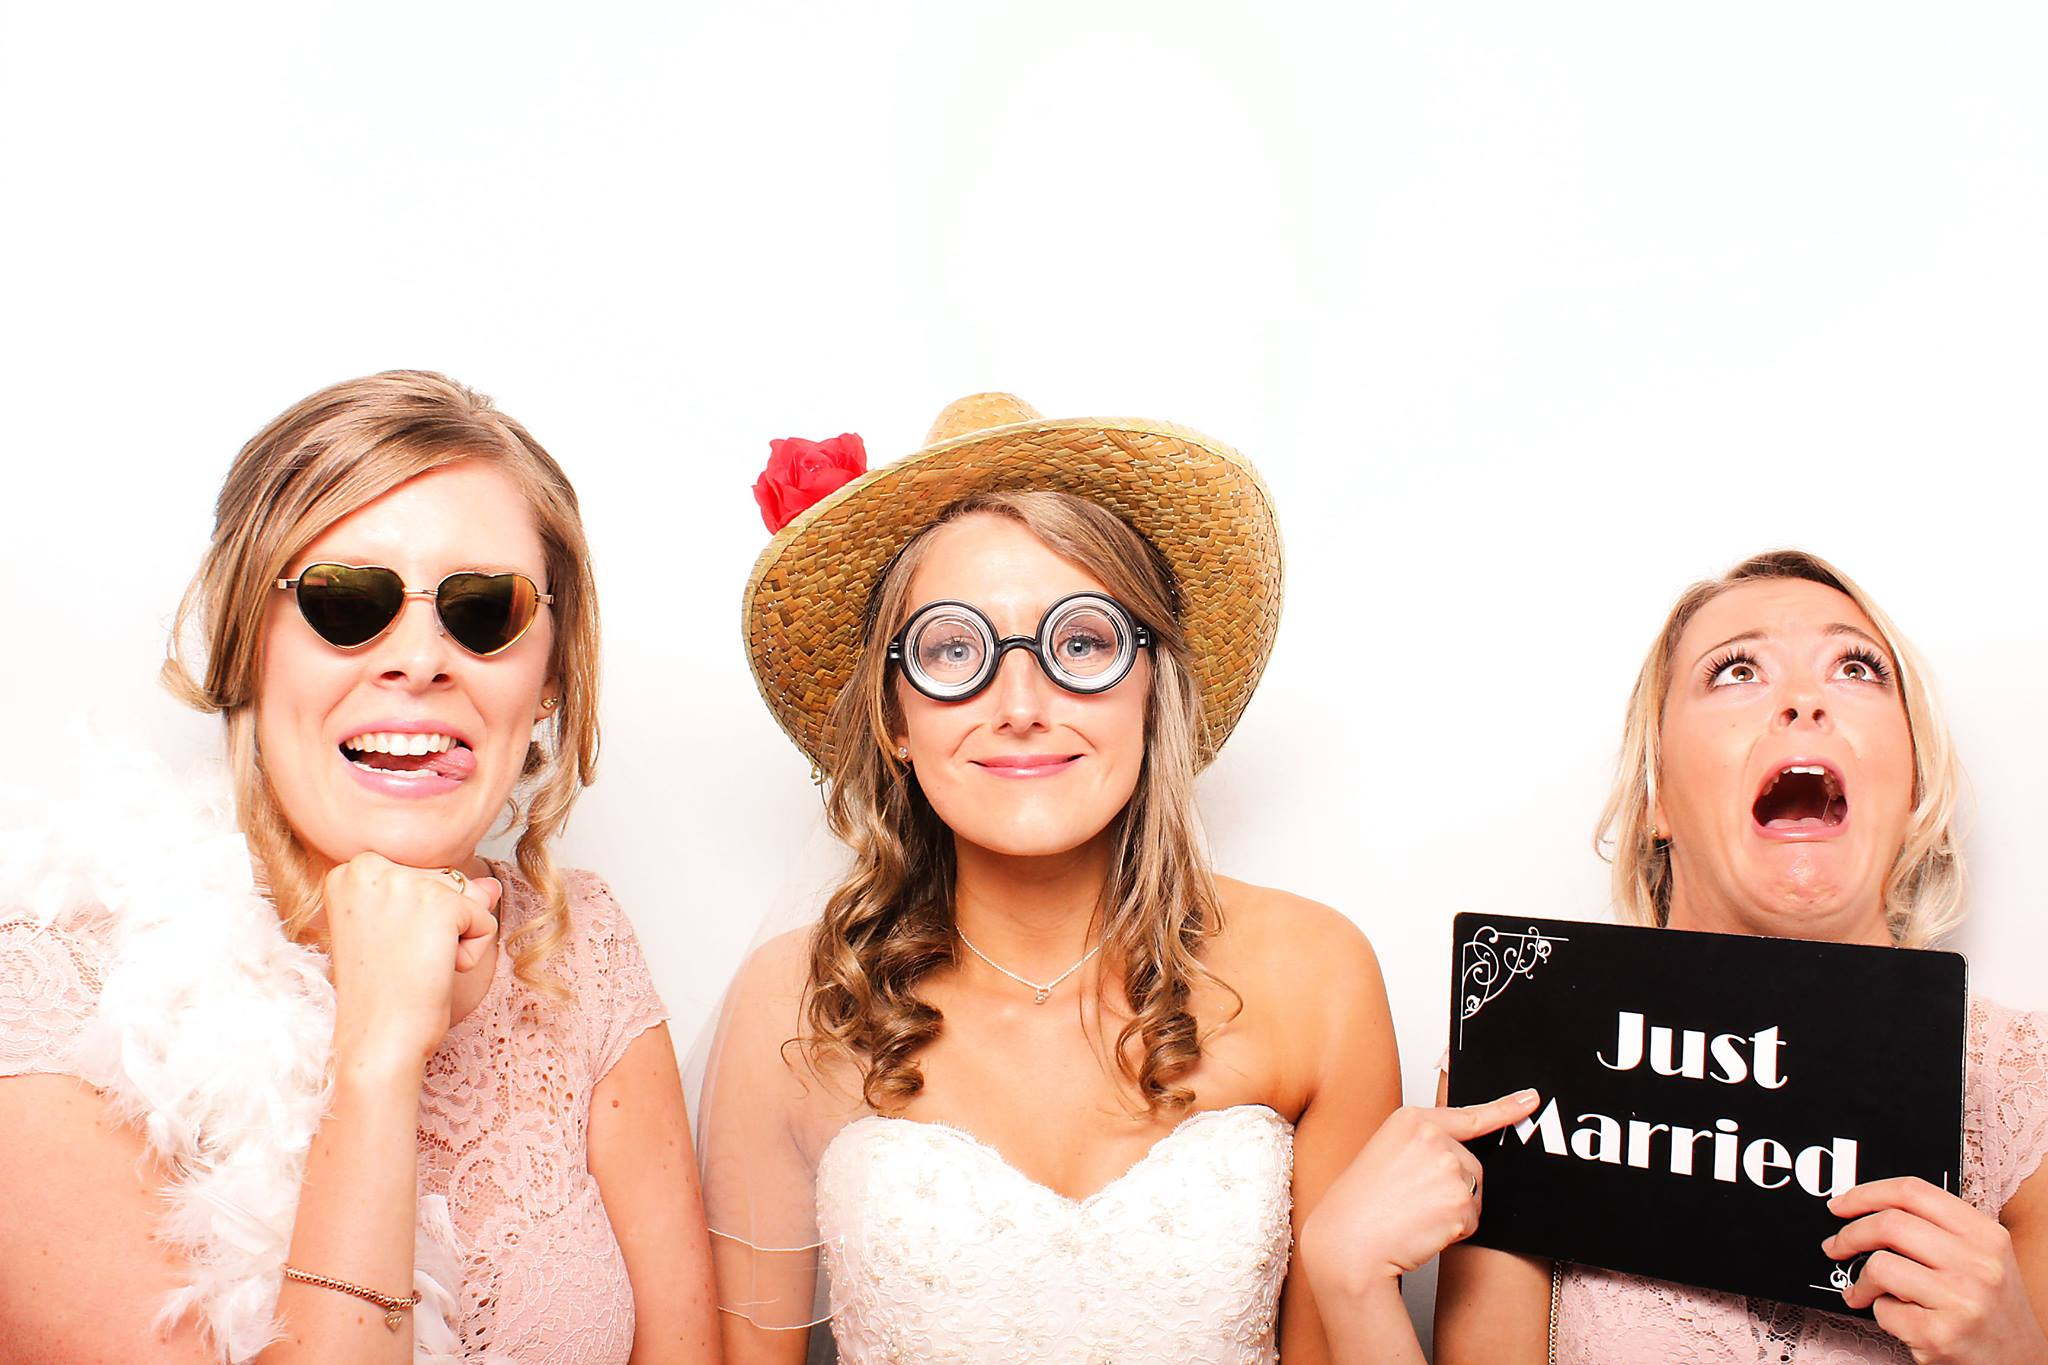 Just married in the Classic Photo Booth